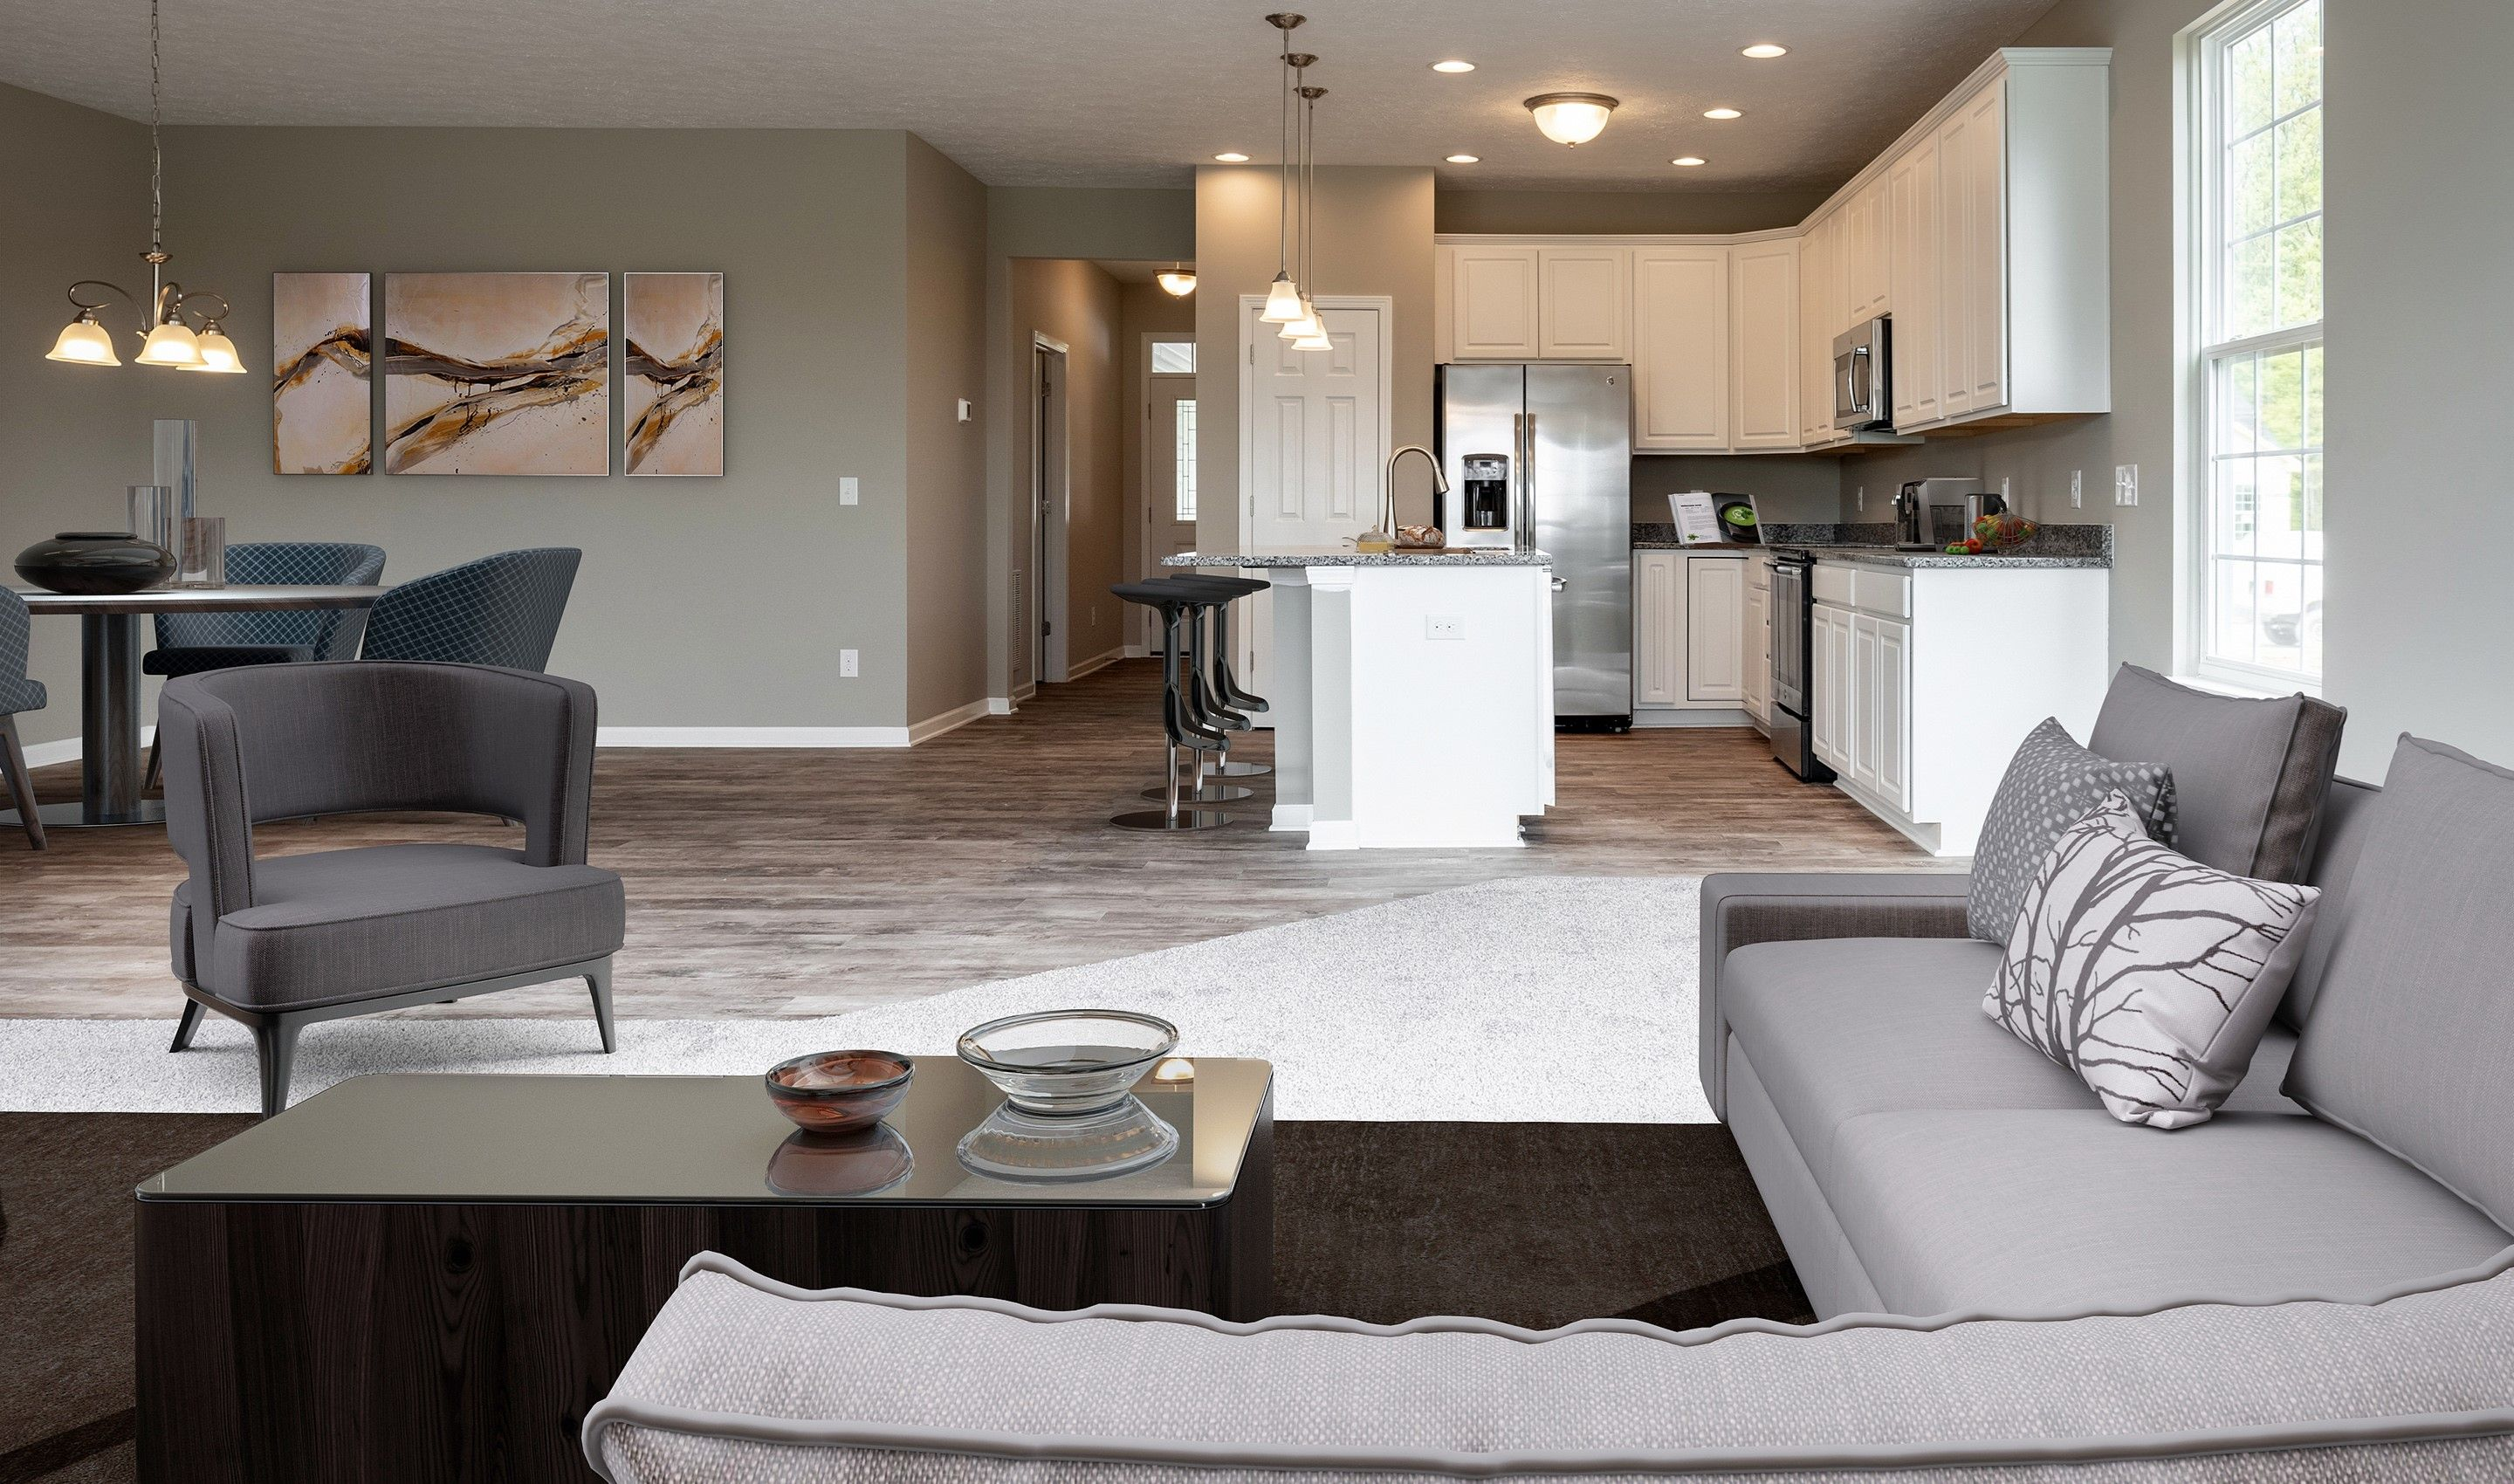 Living Area featured in the Athens By K. Hovnanian's® Four Seasons in Eastern Shore, MD